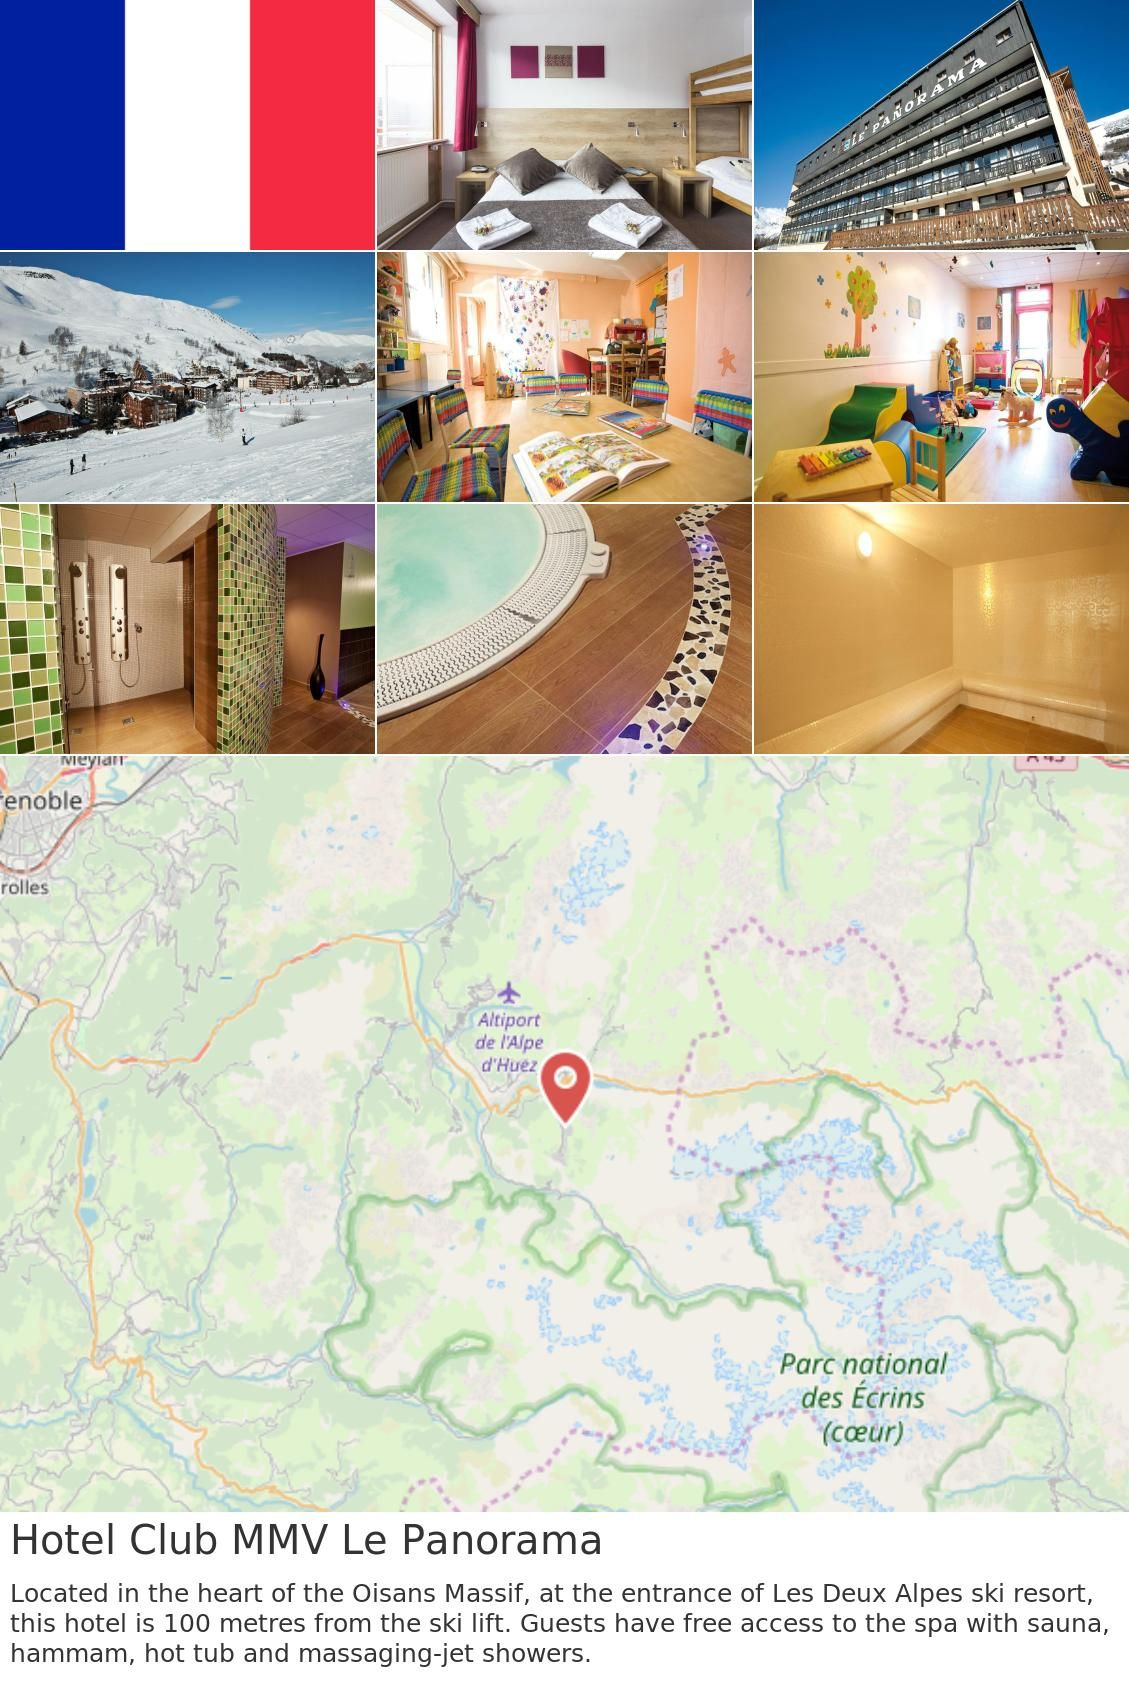 Europe France Les Deux Alpes Hotel Club Mmv Le Panorama Located